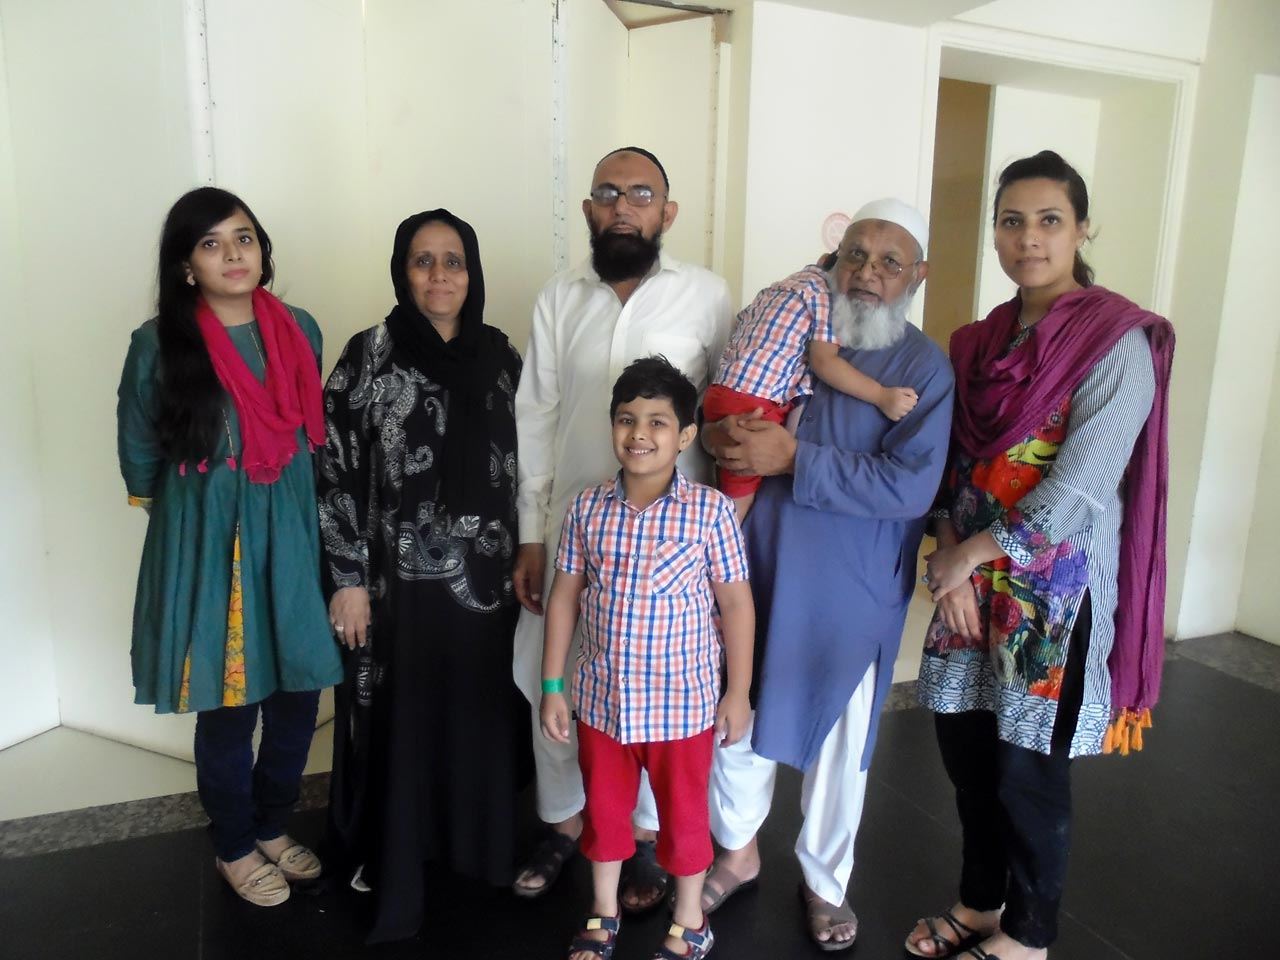 Atauddin Qureshi with his family members